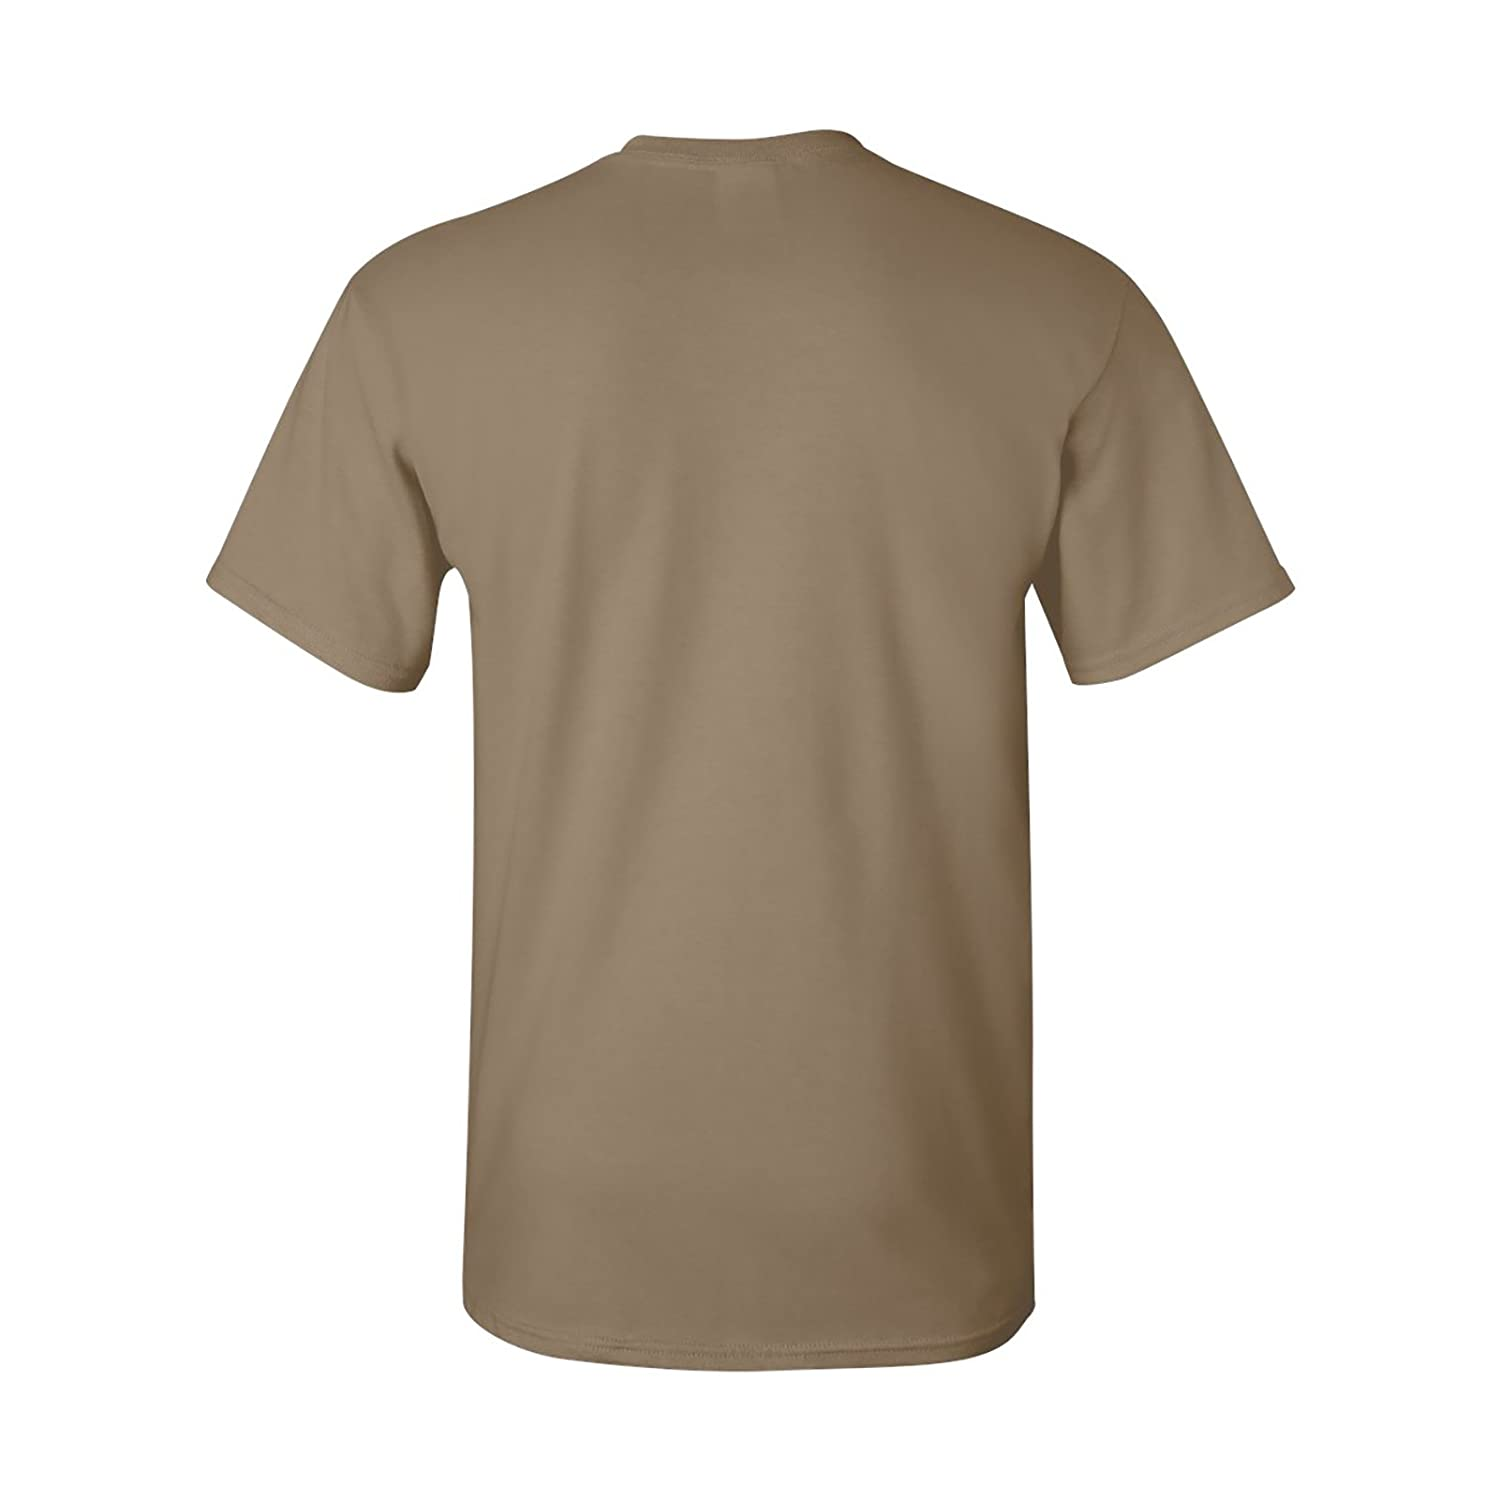 4f8485df Amazon.com: UGP Campus Apparel Don't Settle for Less Basic Cotton T-Shirt:  Clothing